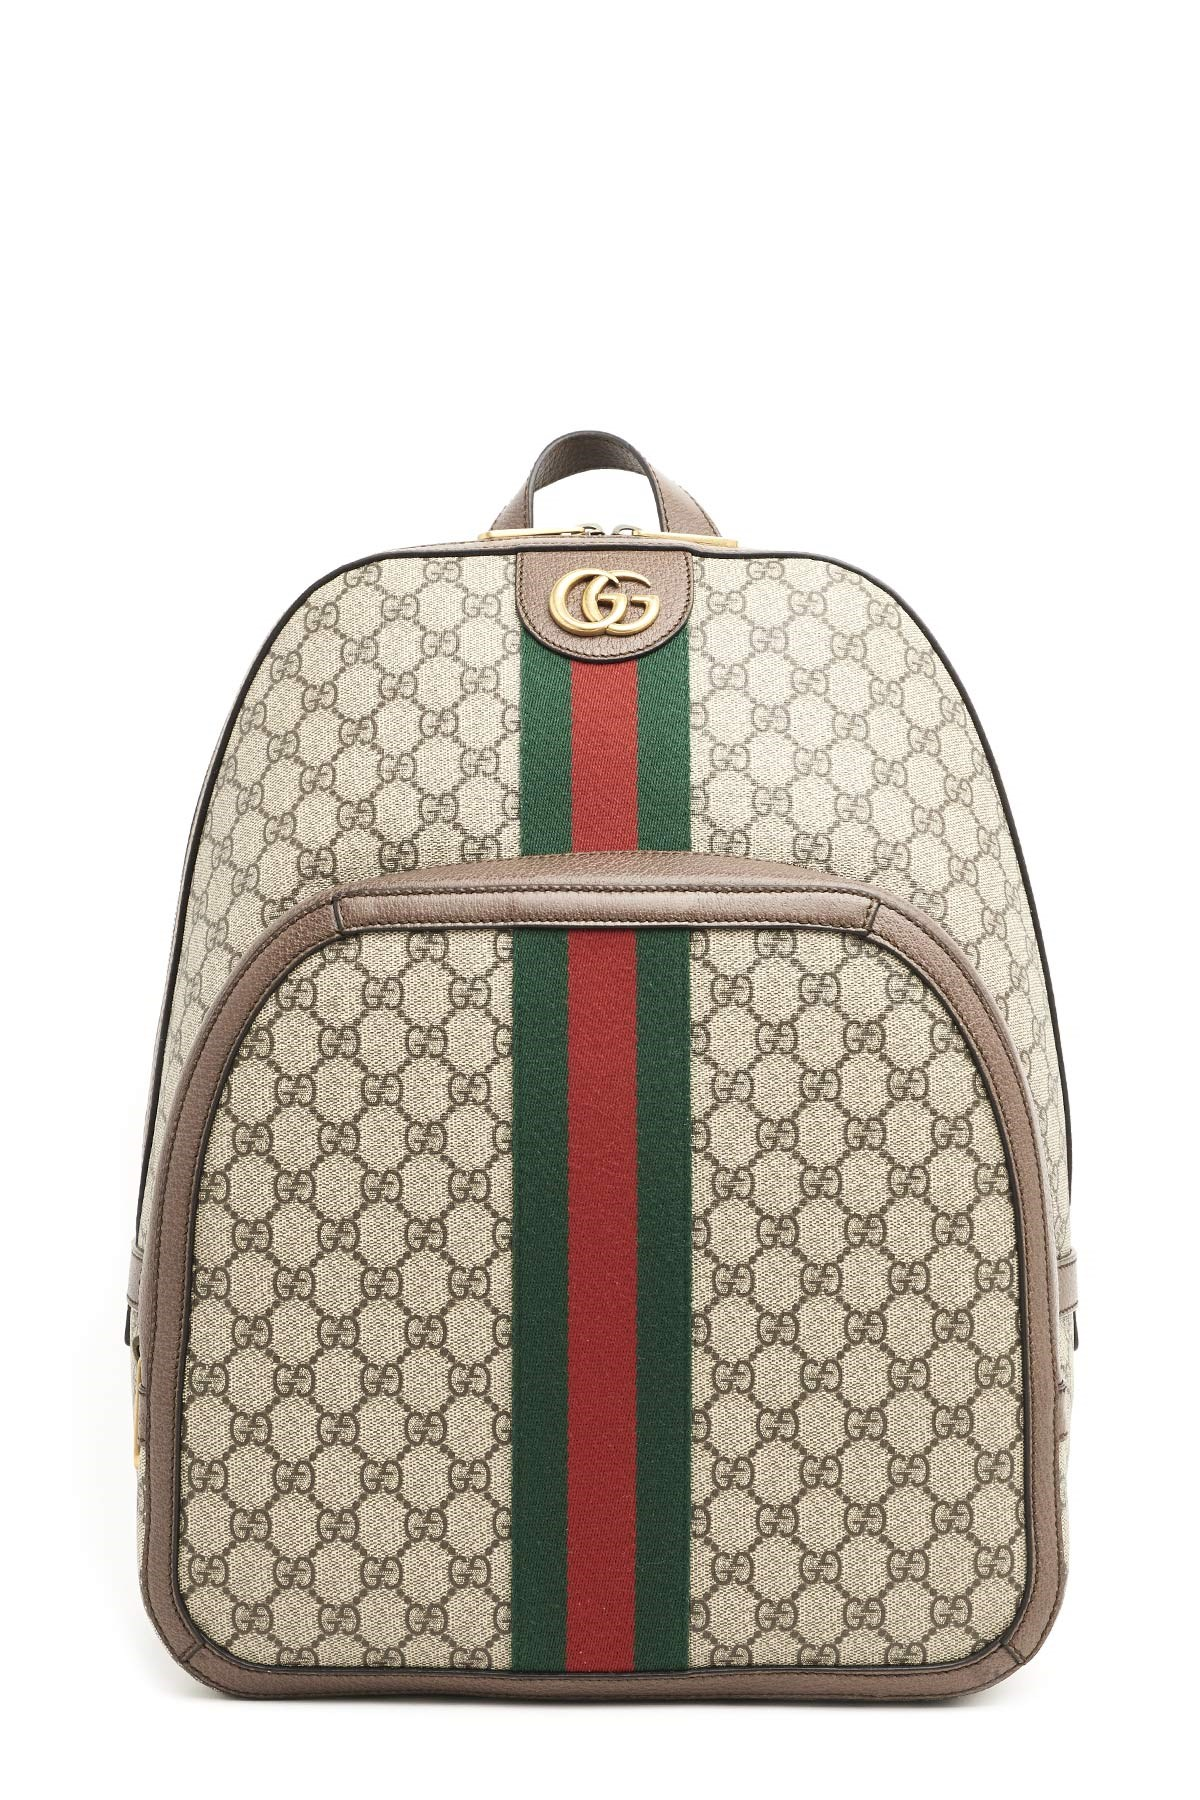 707e6f99c6f gucci  GG supreme  backpack available on julian-fashion.com - 62379